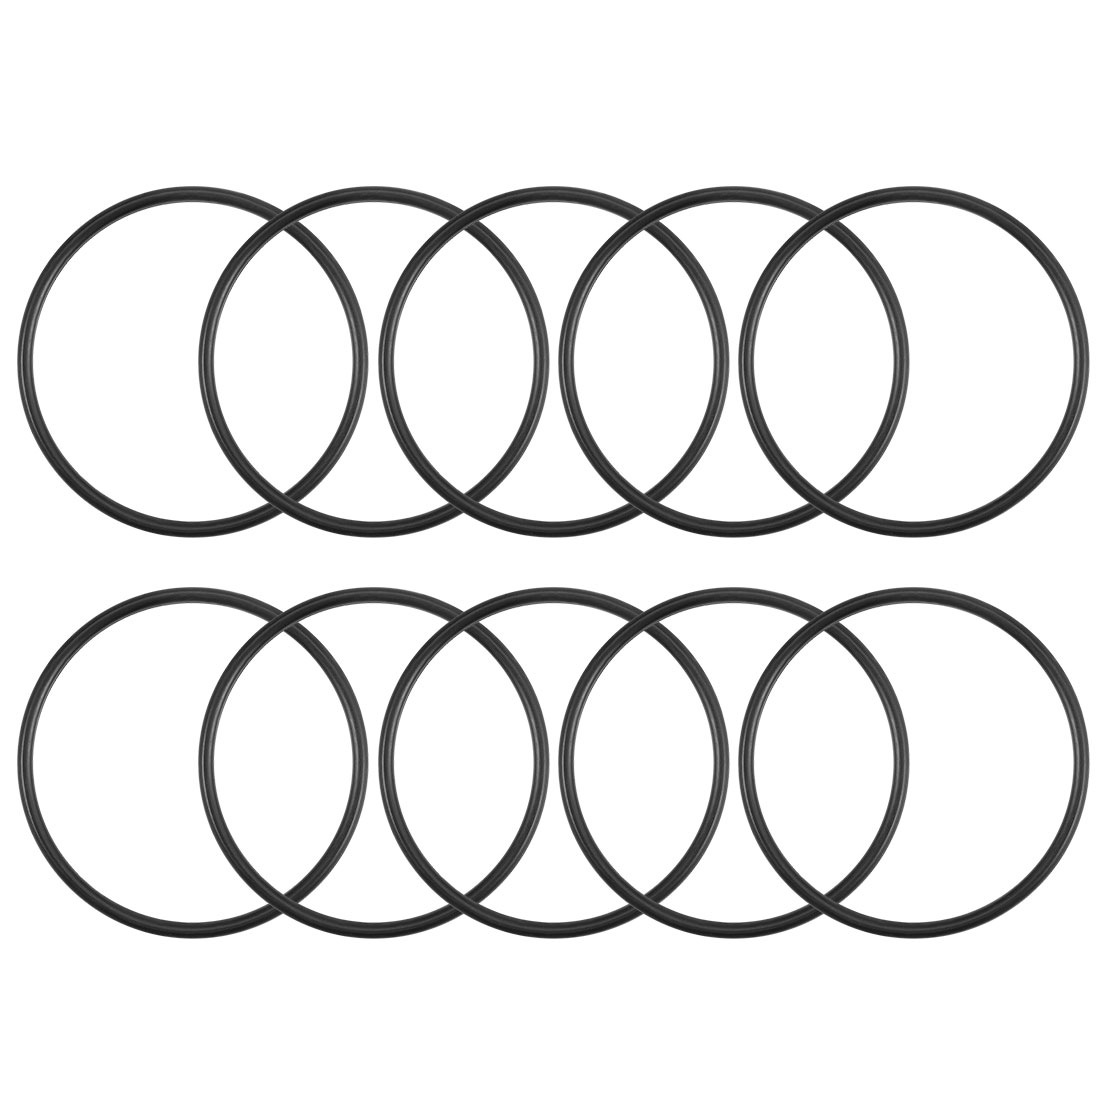 O-Rings Nitrile Rubber 38.7mm x 42.3mm x 1.8mm Round Seal Gasket 10Pcs